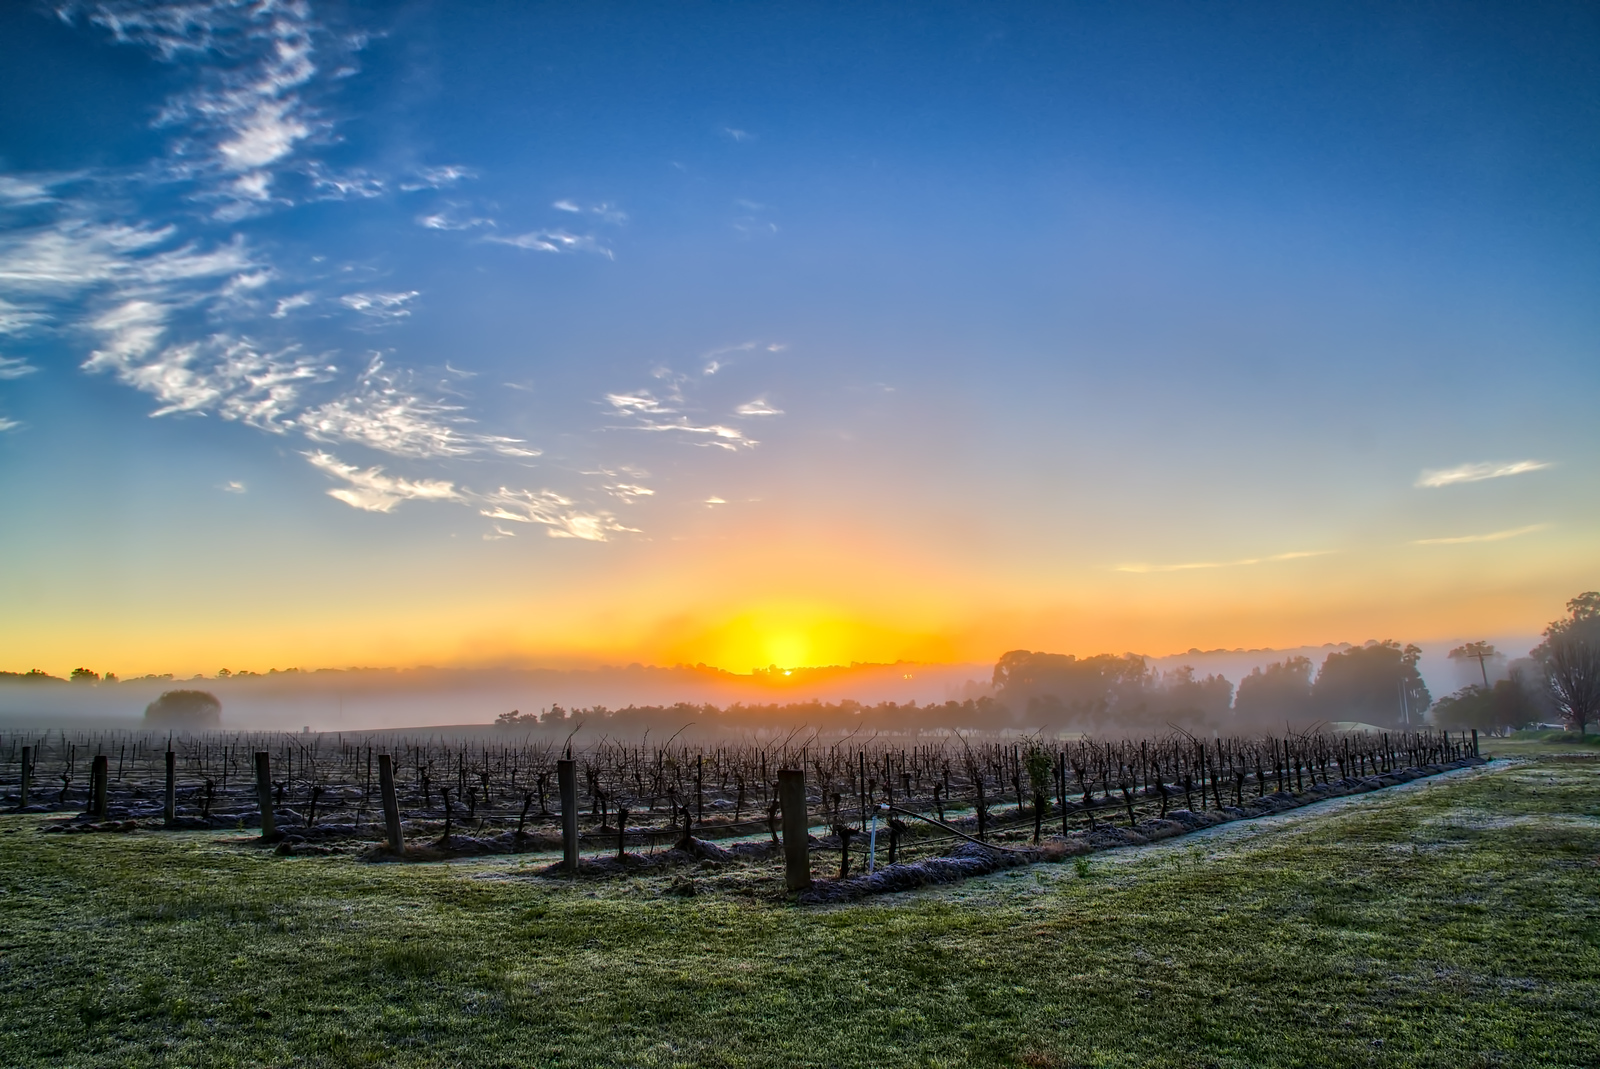 Vinyard Sunrise